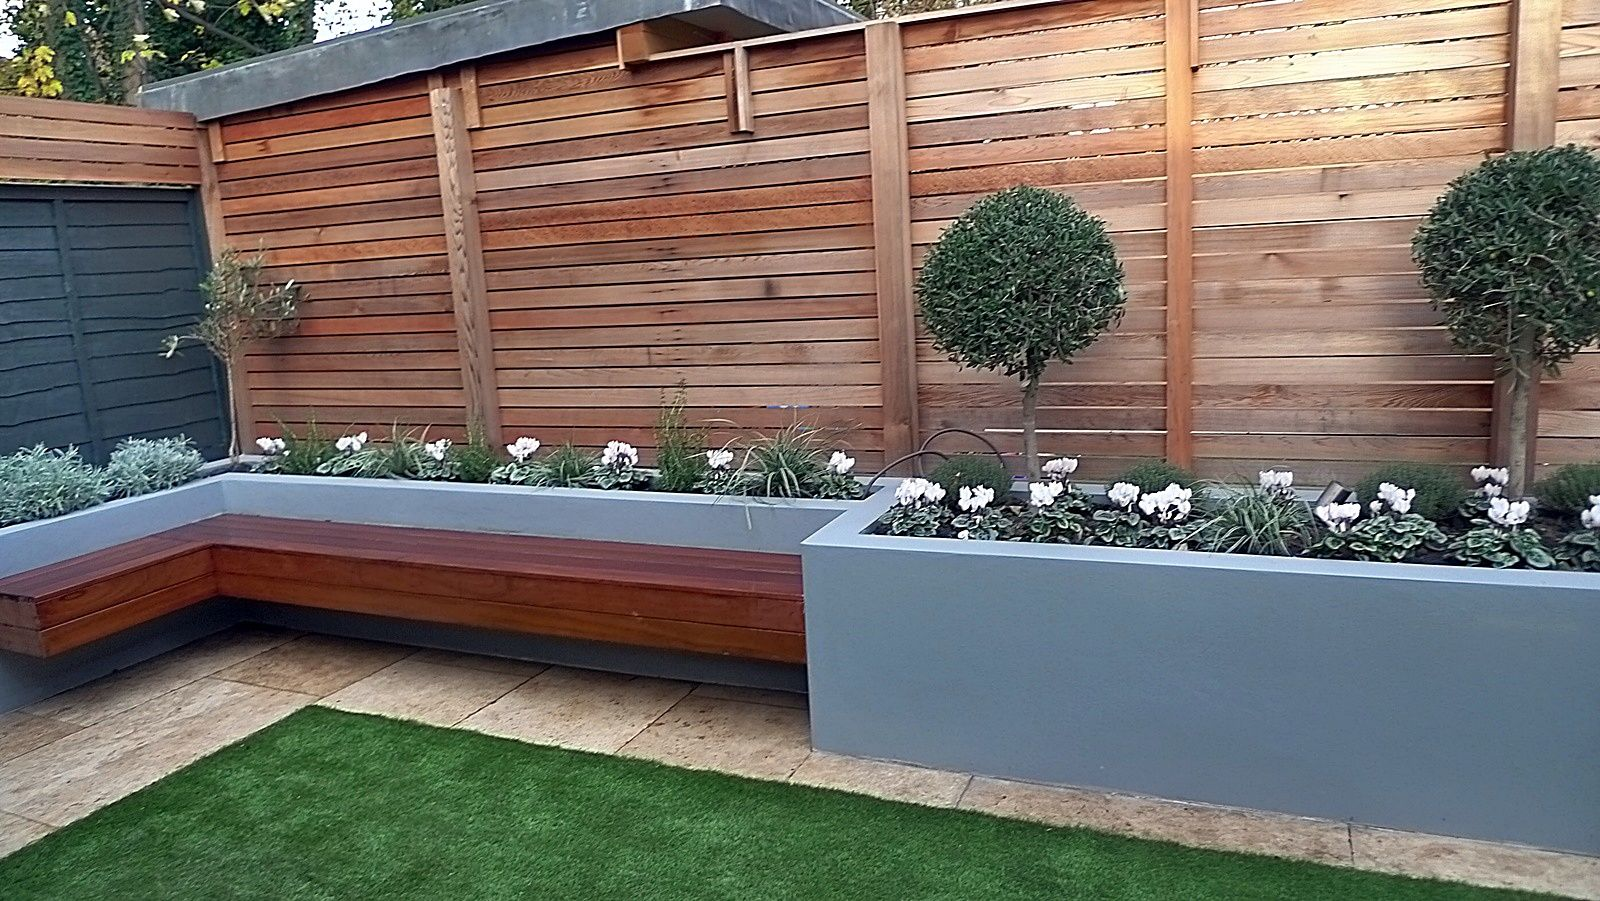 Raised flower bed with grass google search courtyard for Garden designs with raised beds